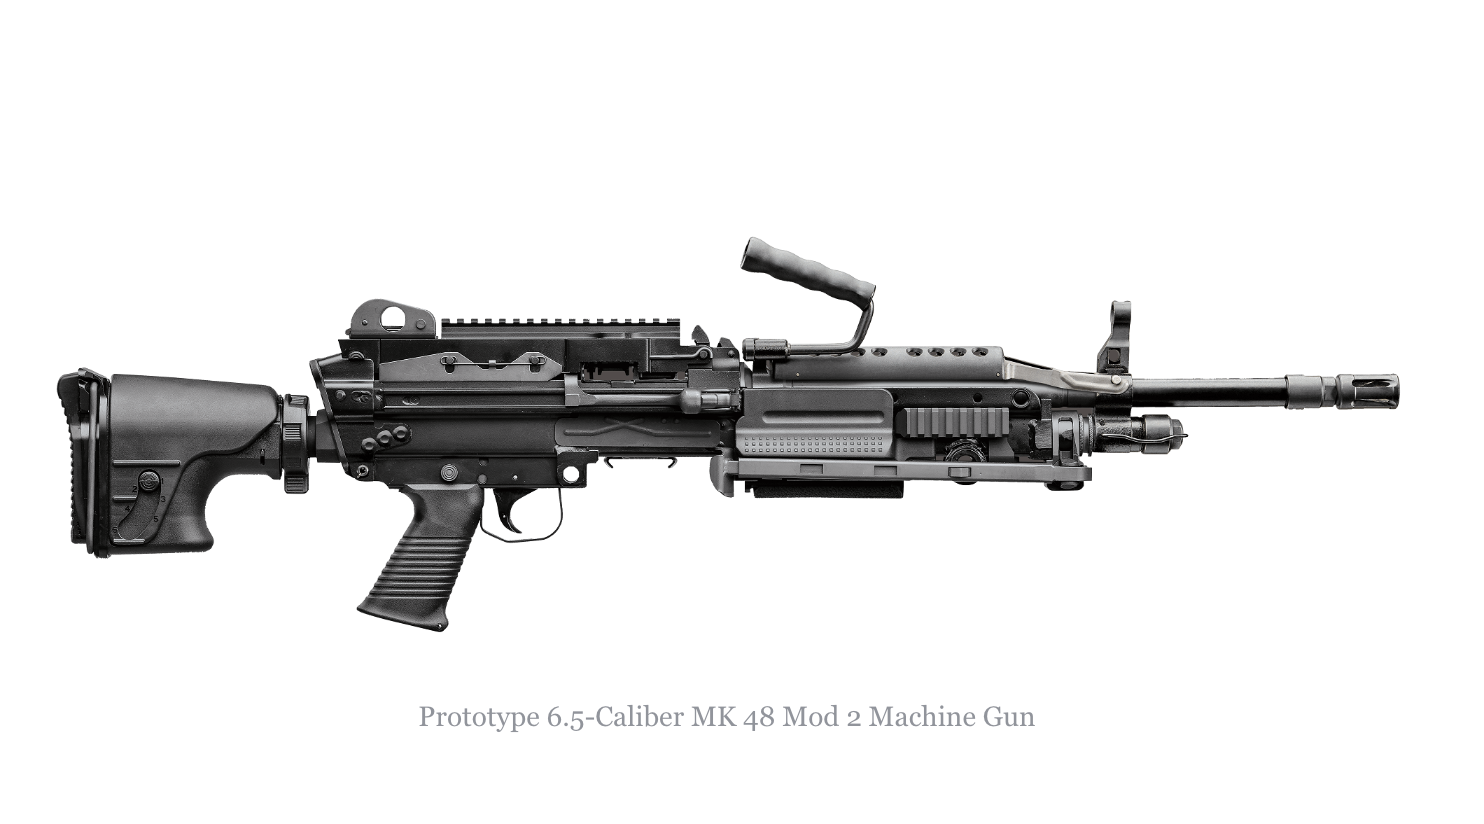 FN Announcing 6.5 CM MK48 Mod 2 for Army Trials - GunsAmerica Digest